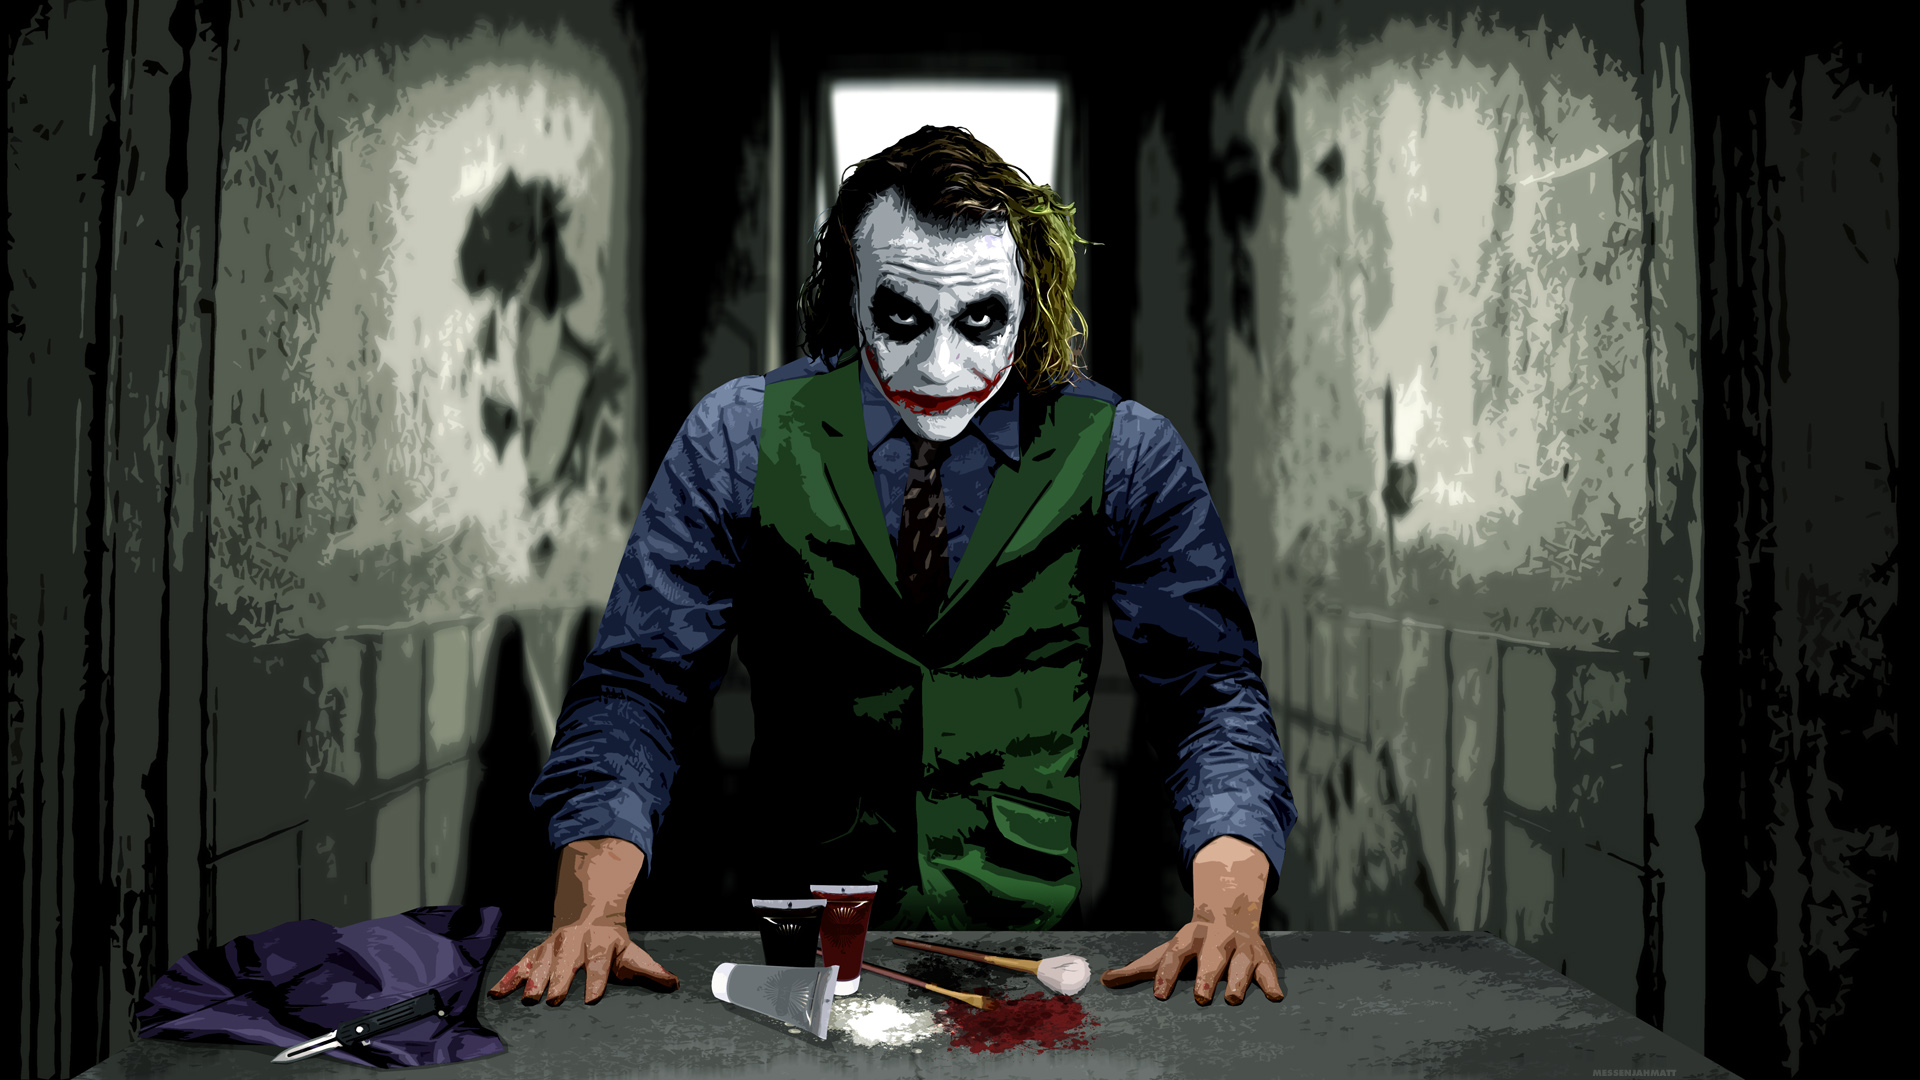 Scary Joker wallpaper images to all